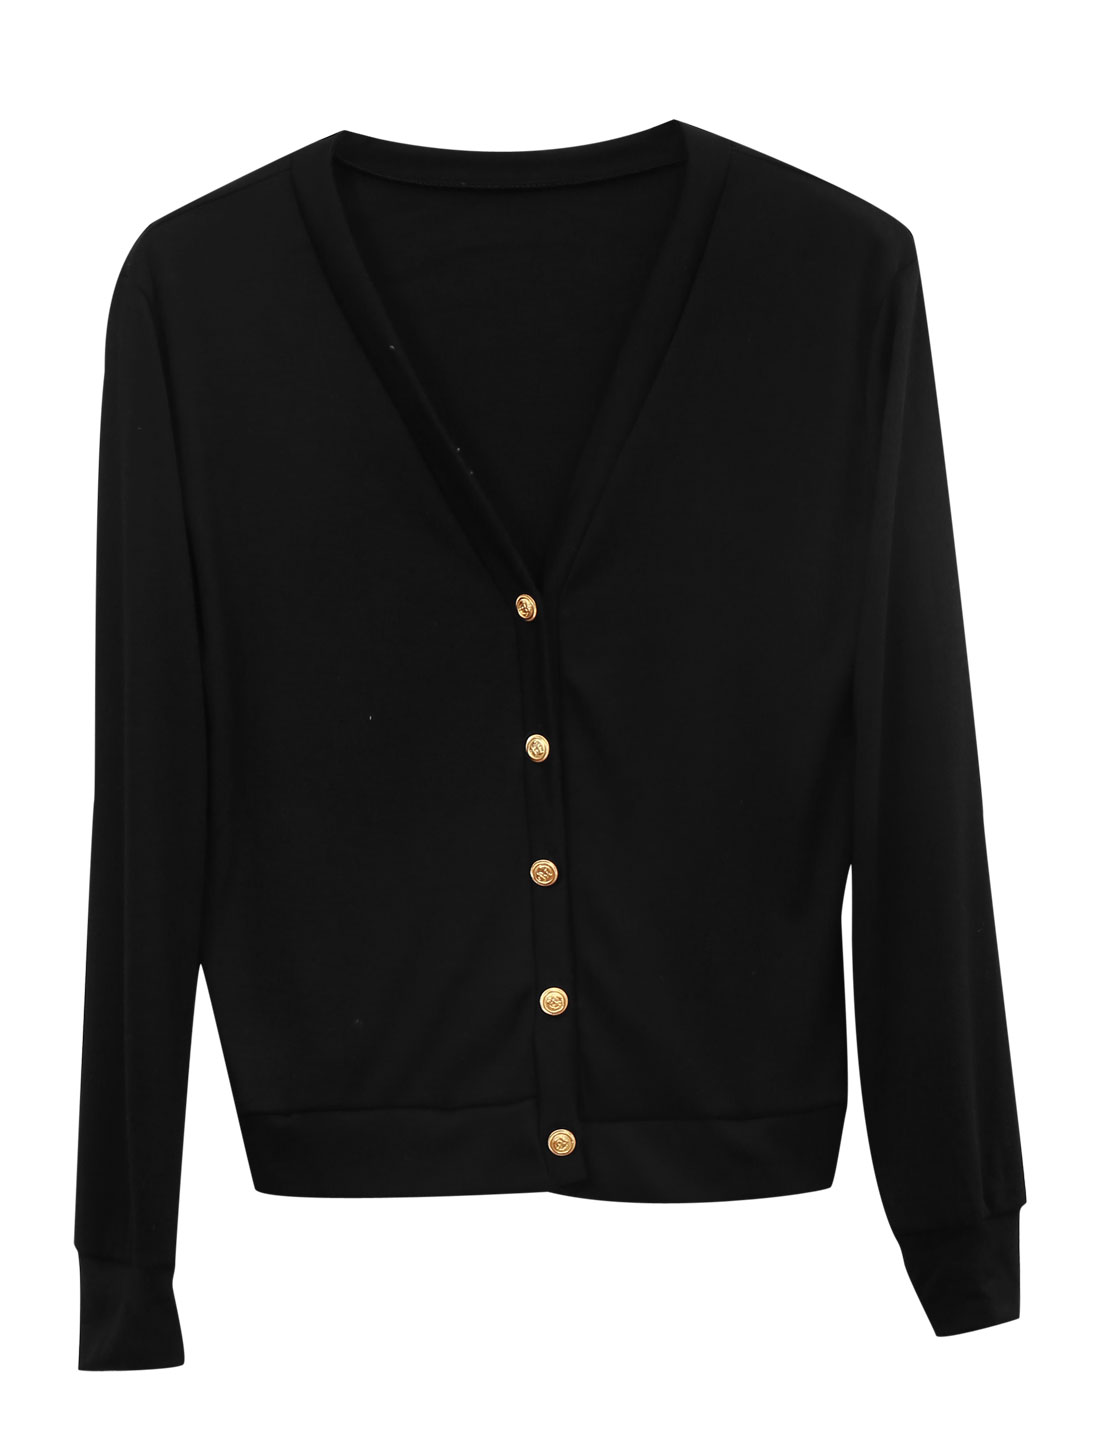 Lady Long Sleeve Single Breasted Soft Casual Cardigan Black XS